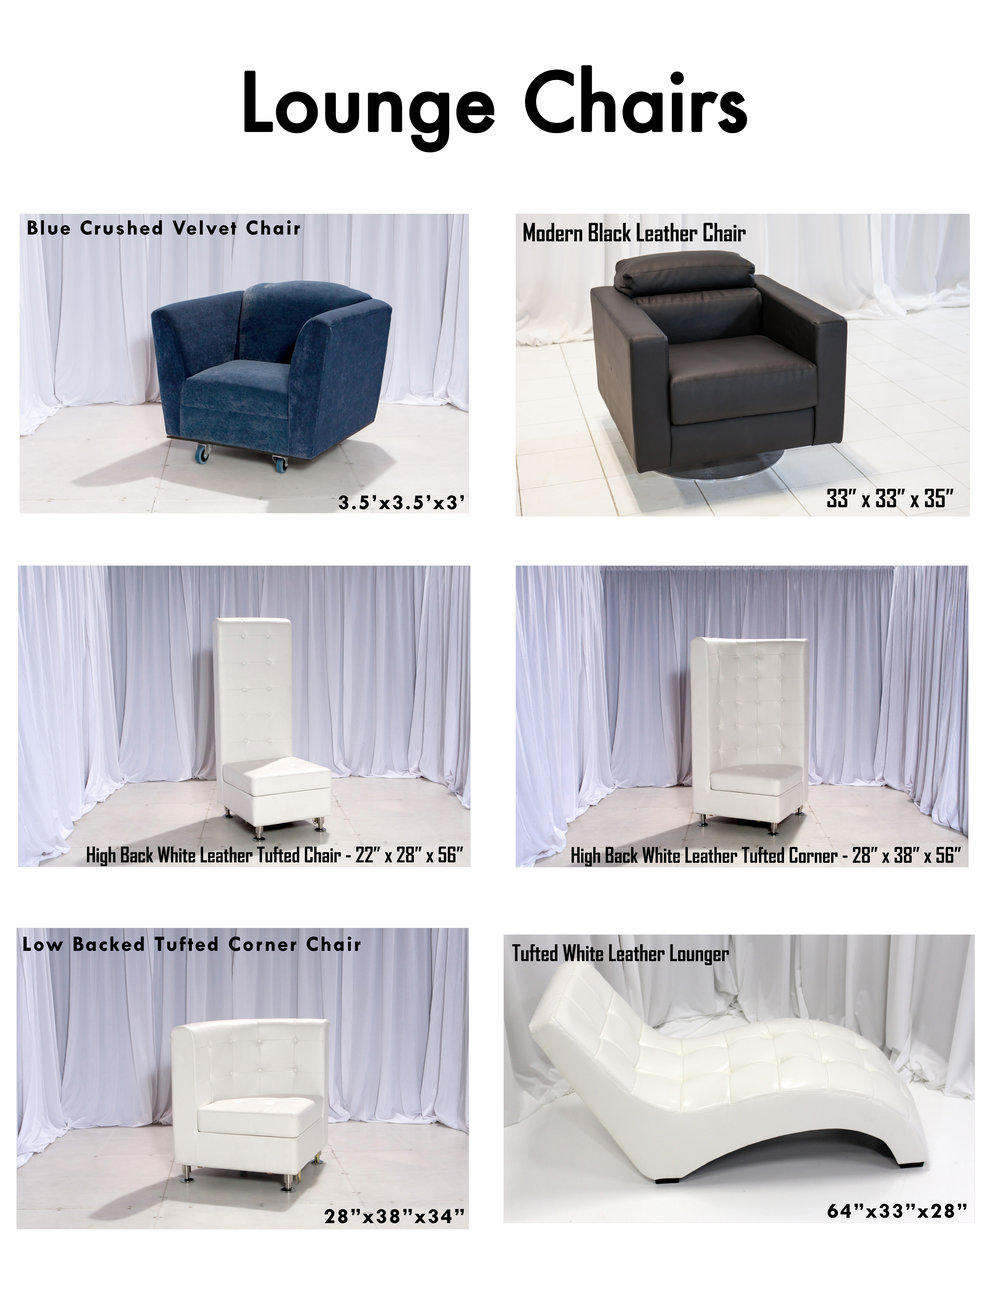 051-P50_Lounge Chairs.jpg